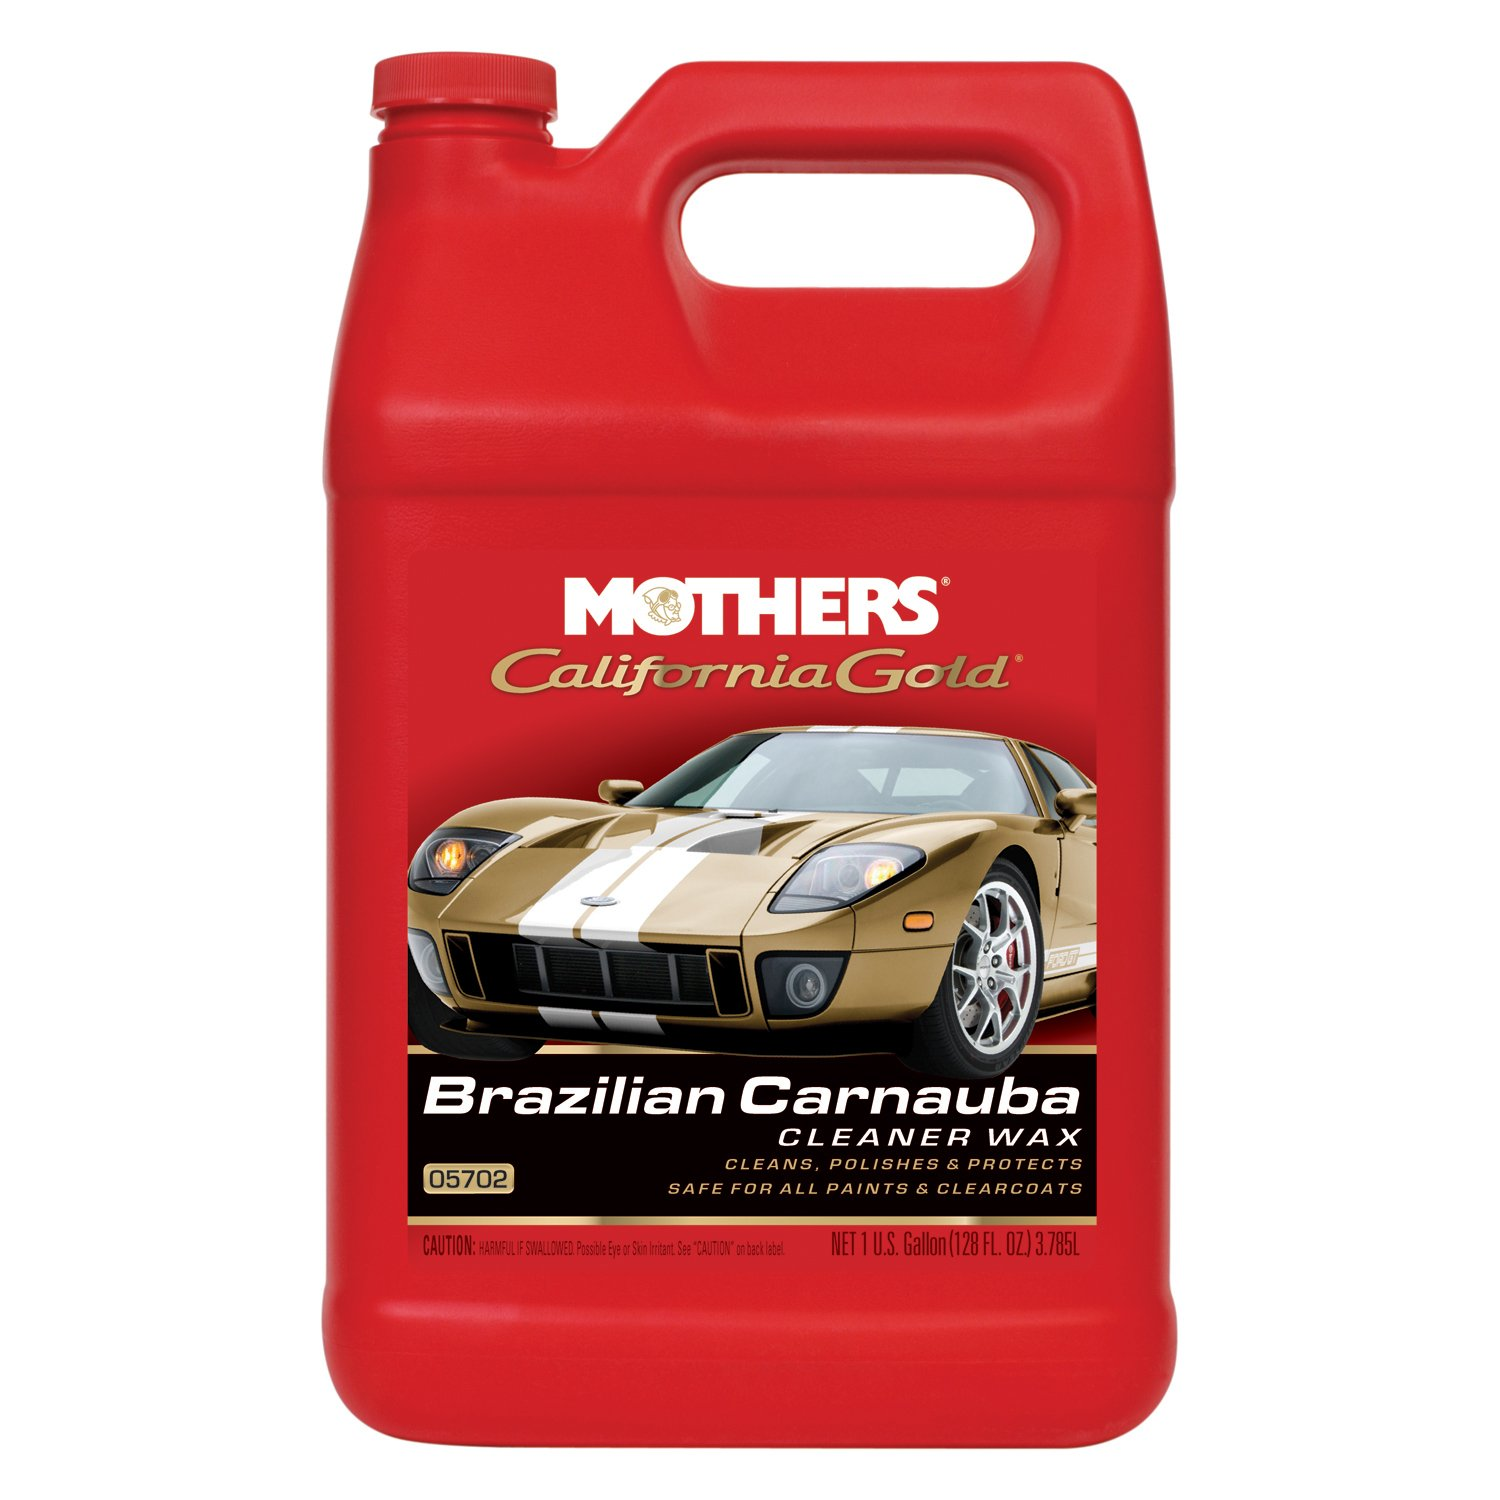 Mothers 05702-4 California Gold Brazilian Carnauba Cleaner Liquid Wax - 1 Gallon, (Pack of 4) by Mothers (Image #1)